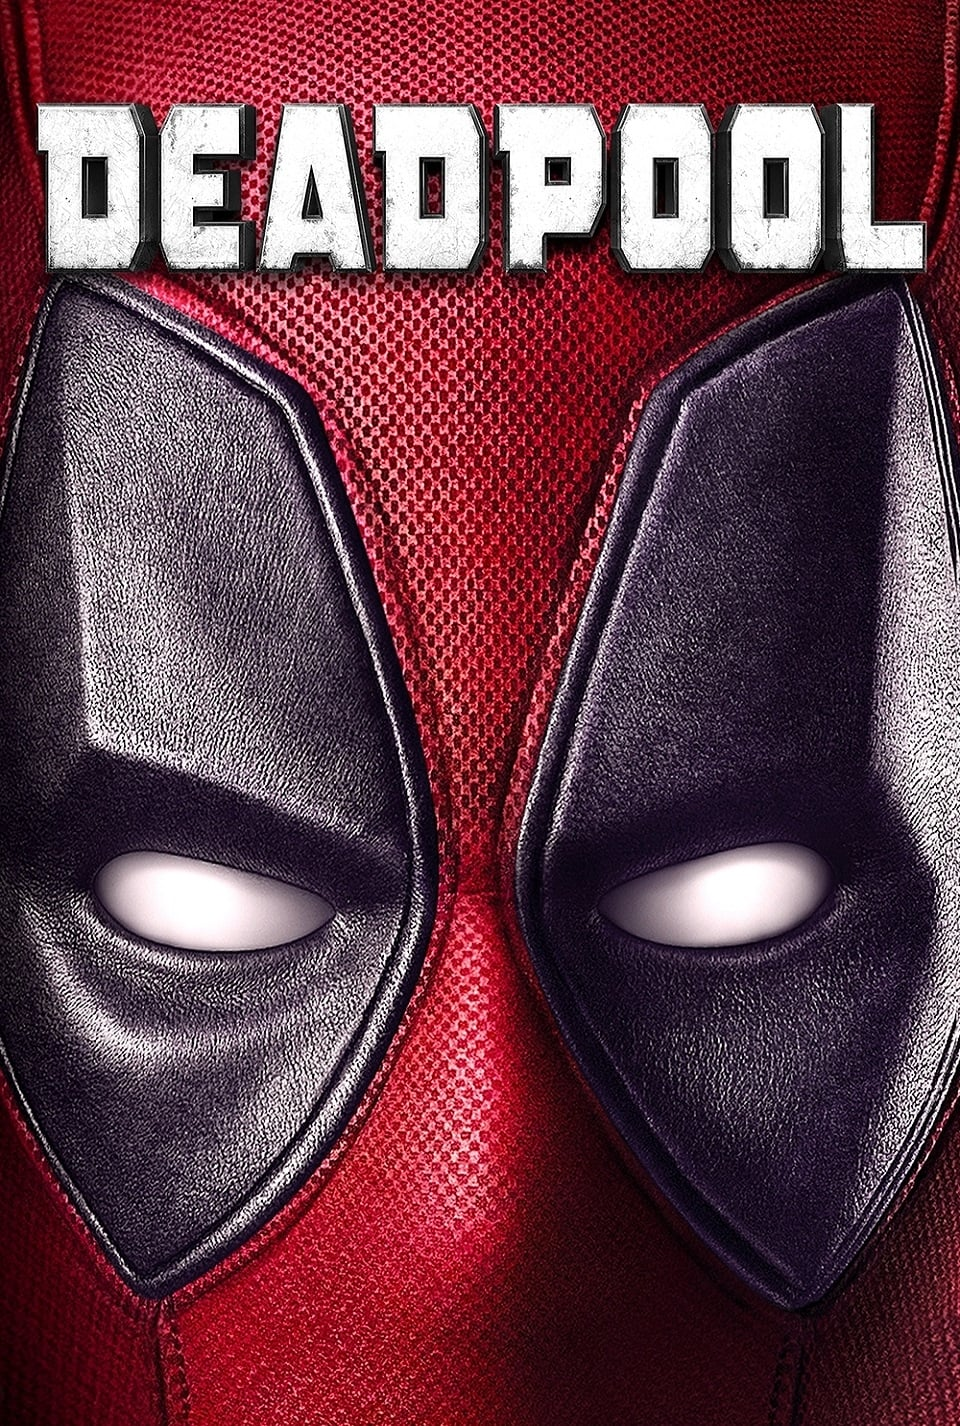 Deadpool [HDX Vudu or HD iTunes via MA]